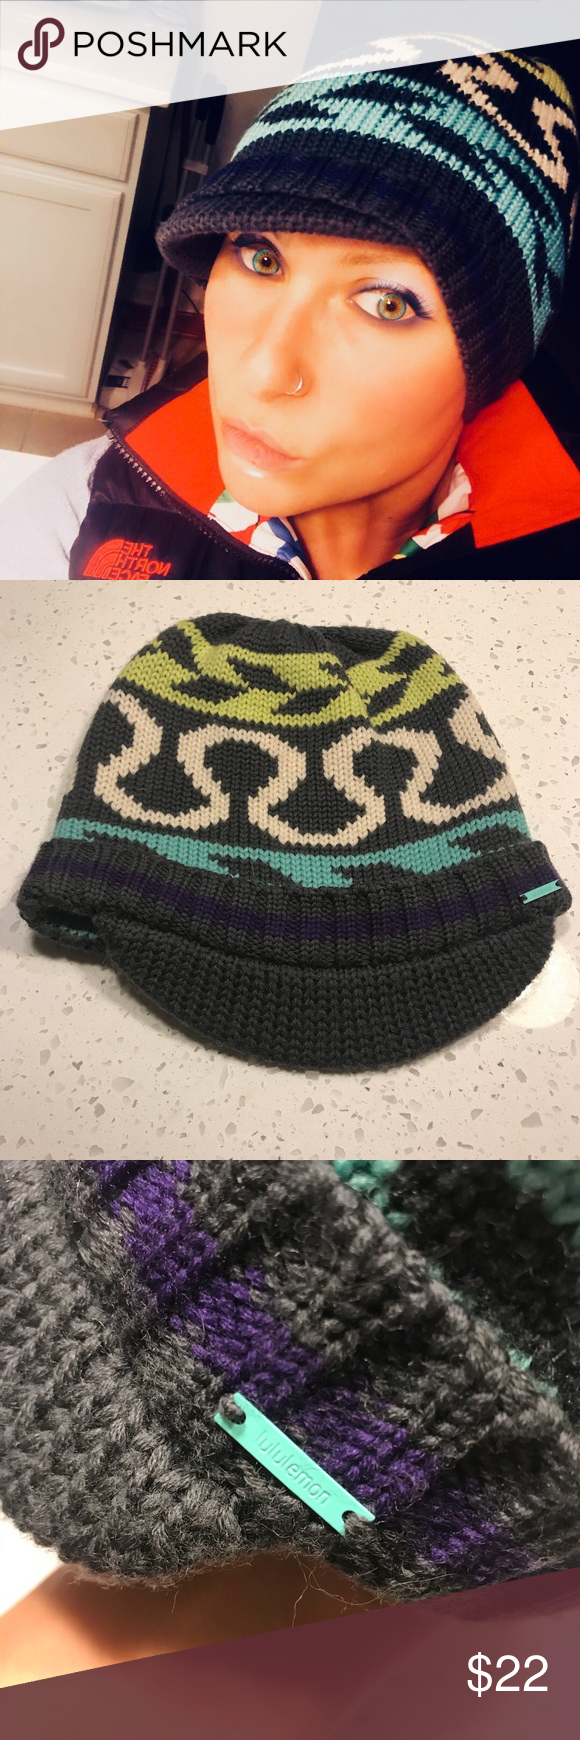 98a489bc43200 Super cute Lululemon beanie. Colorful and soft Lululemon beanie with a  little brim. Perfect call condition